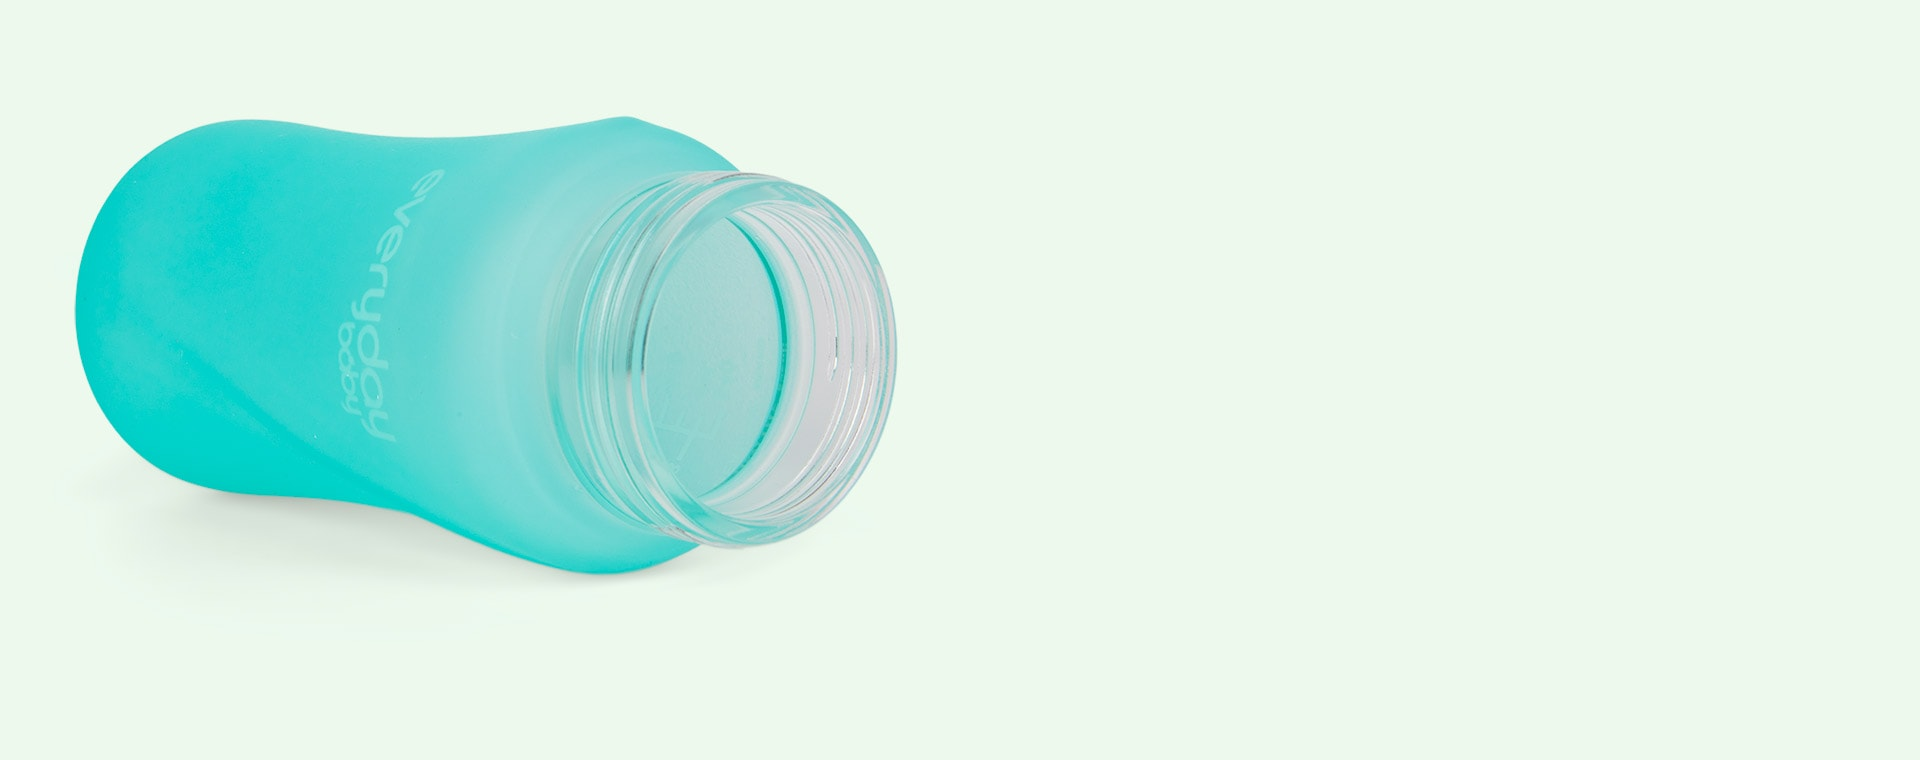 Mint Green Everyday Baby Glass Straw Bottle